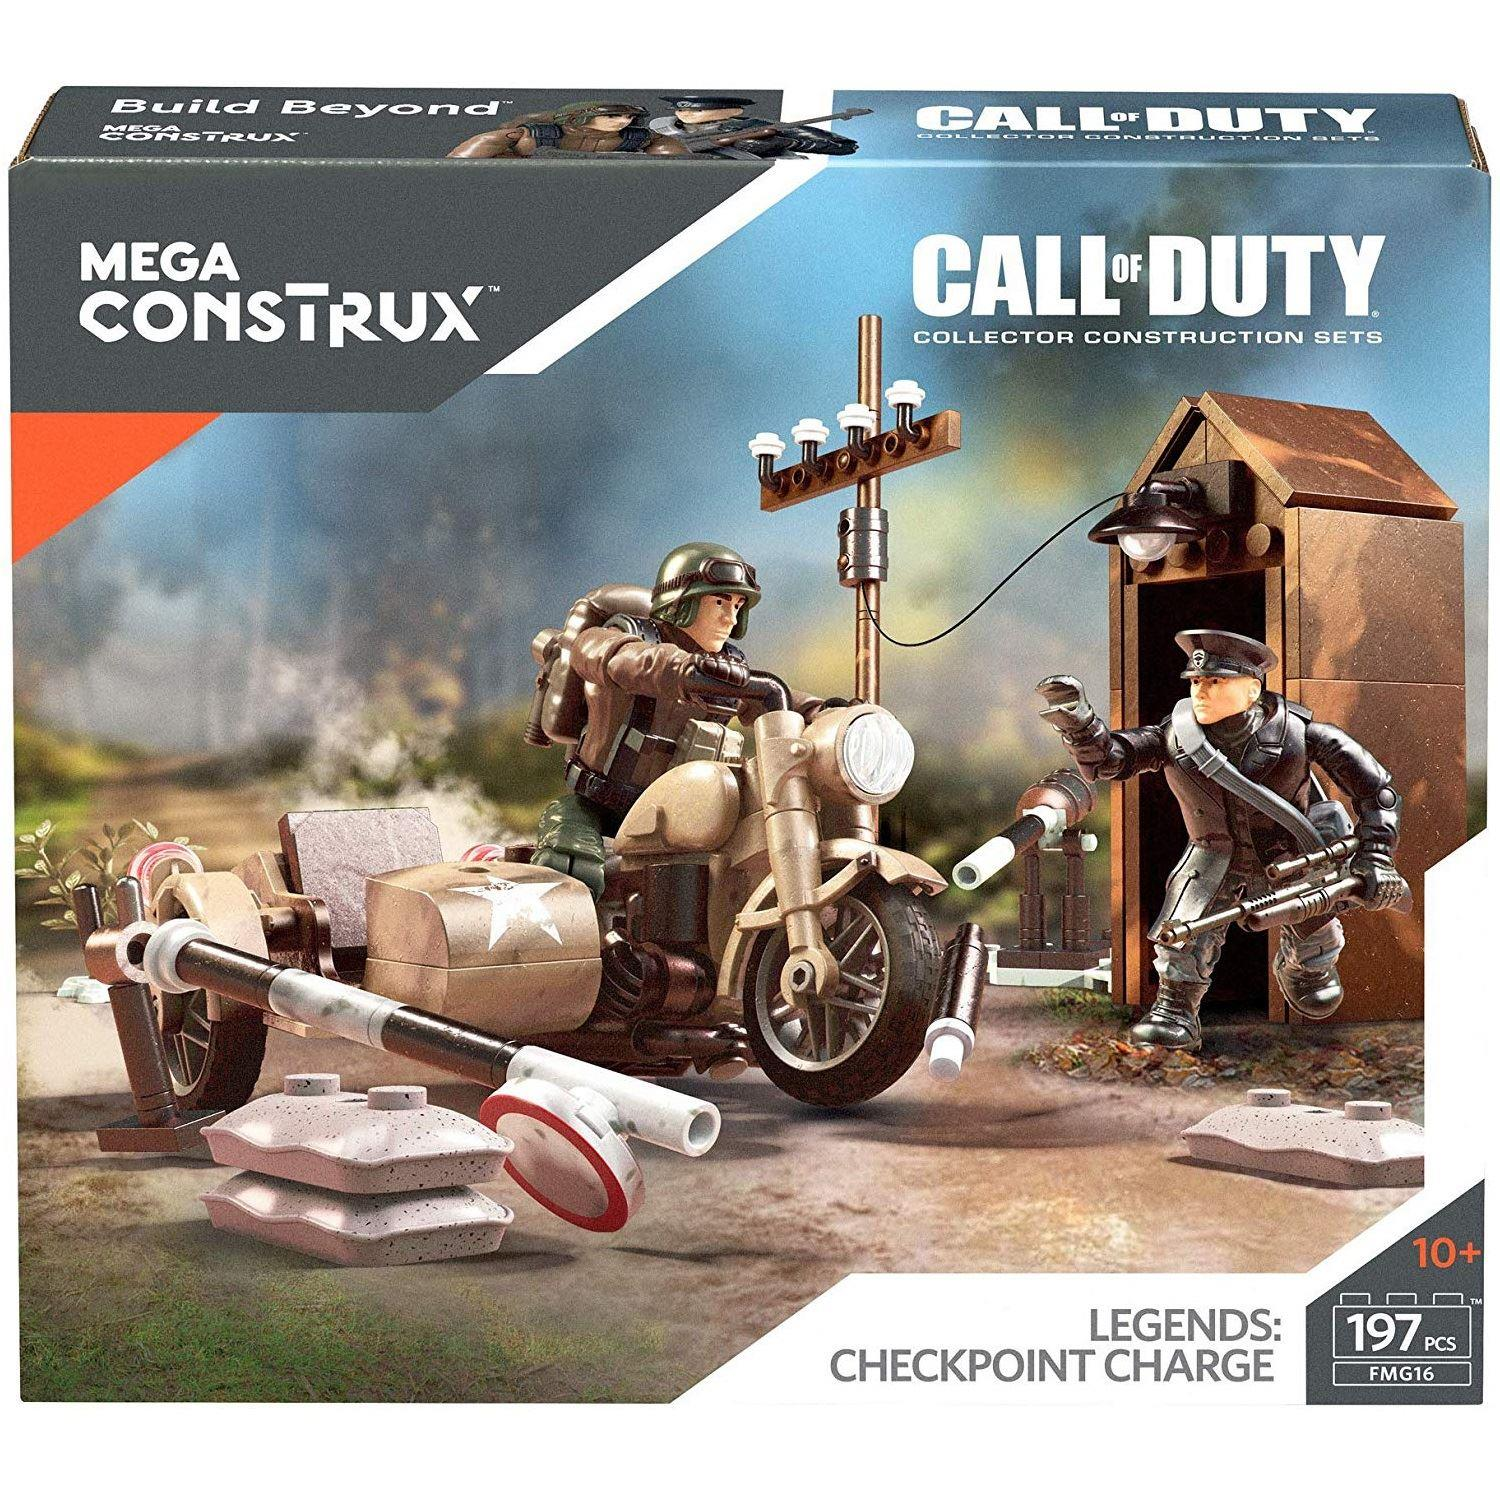 2 Piece Mattel Mega Construx Call of Duty Buildable Playset